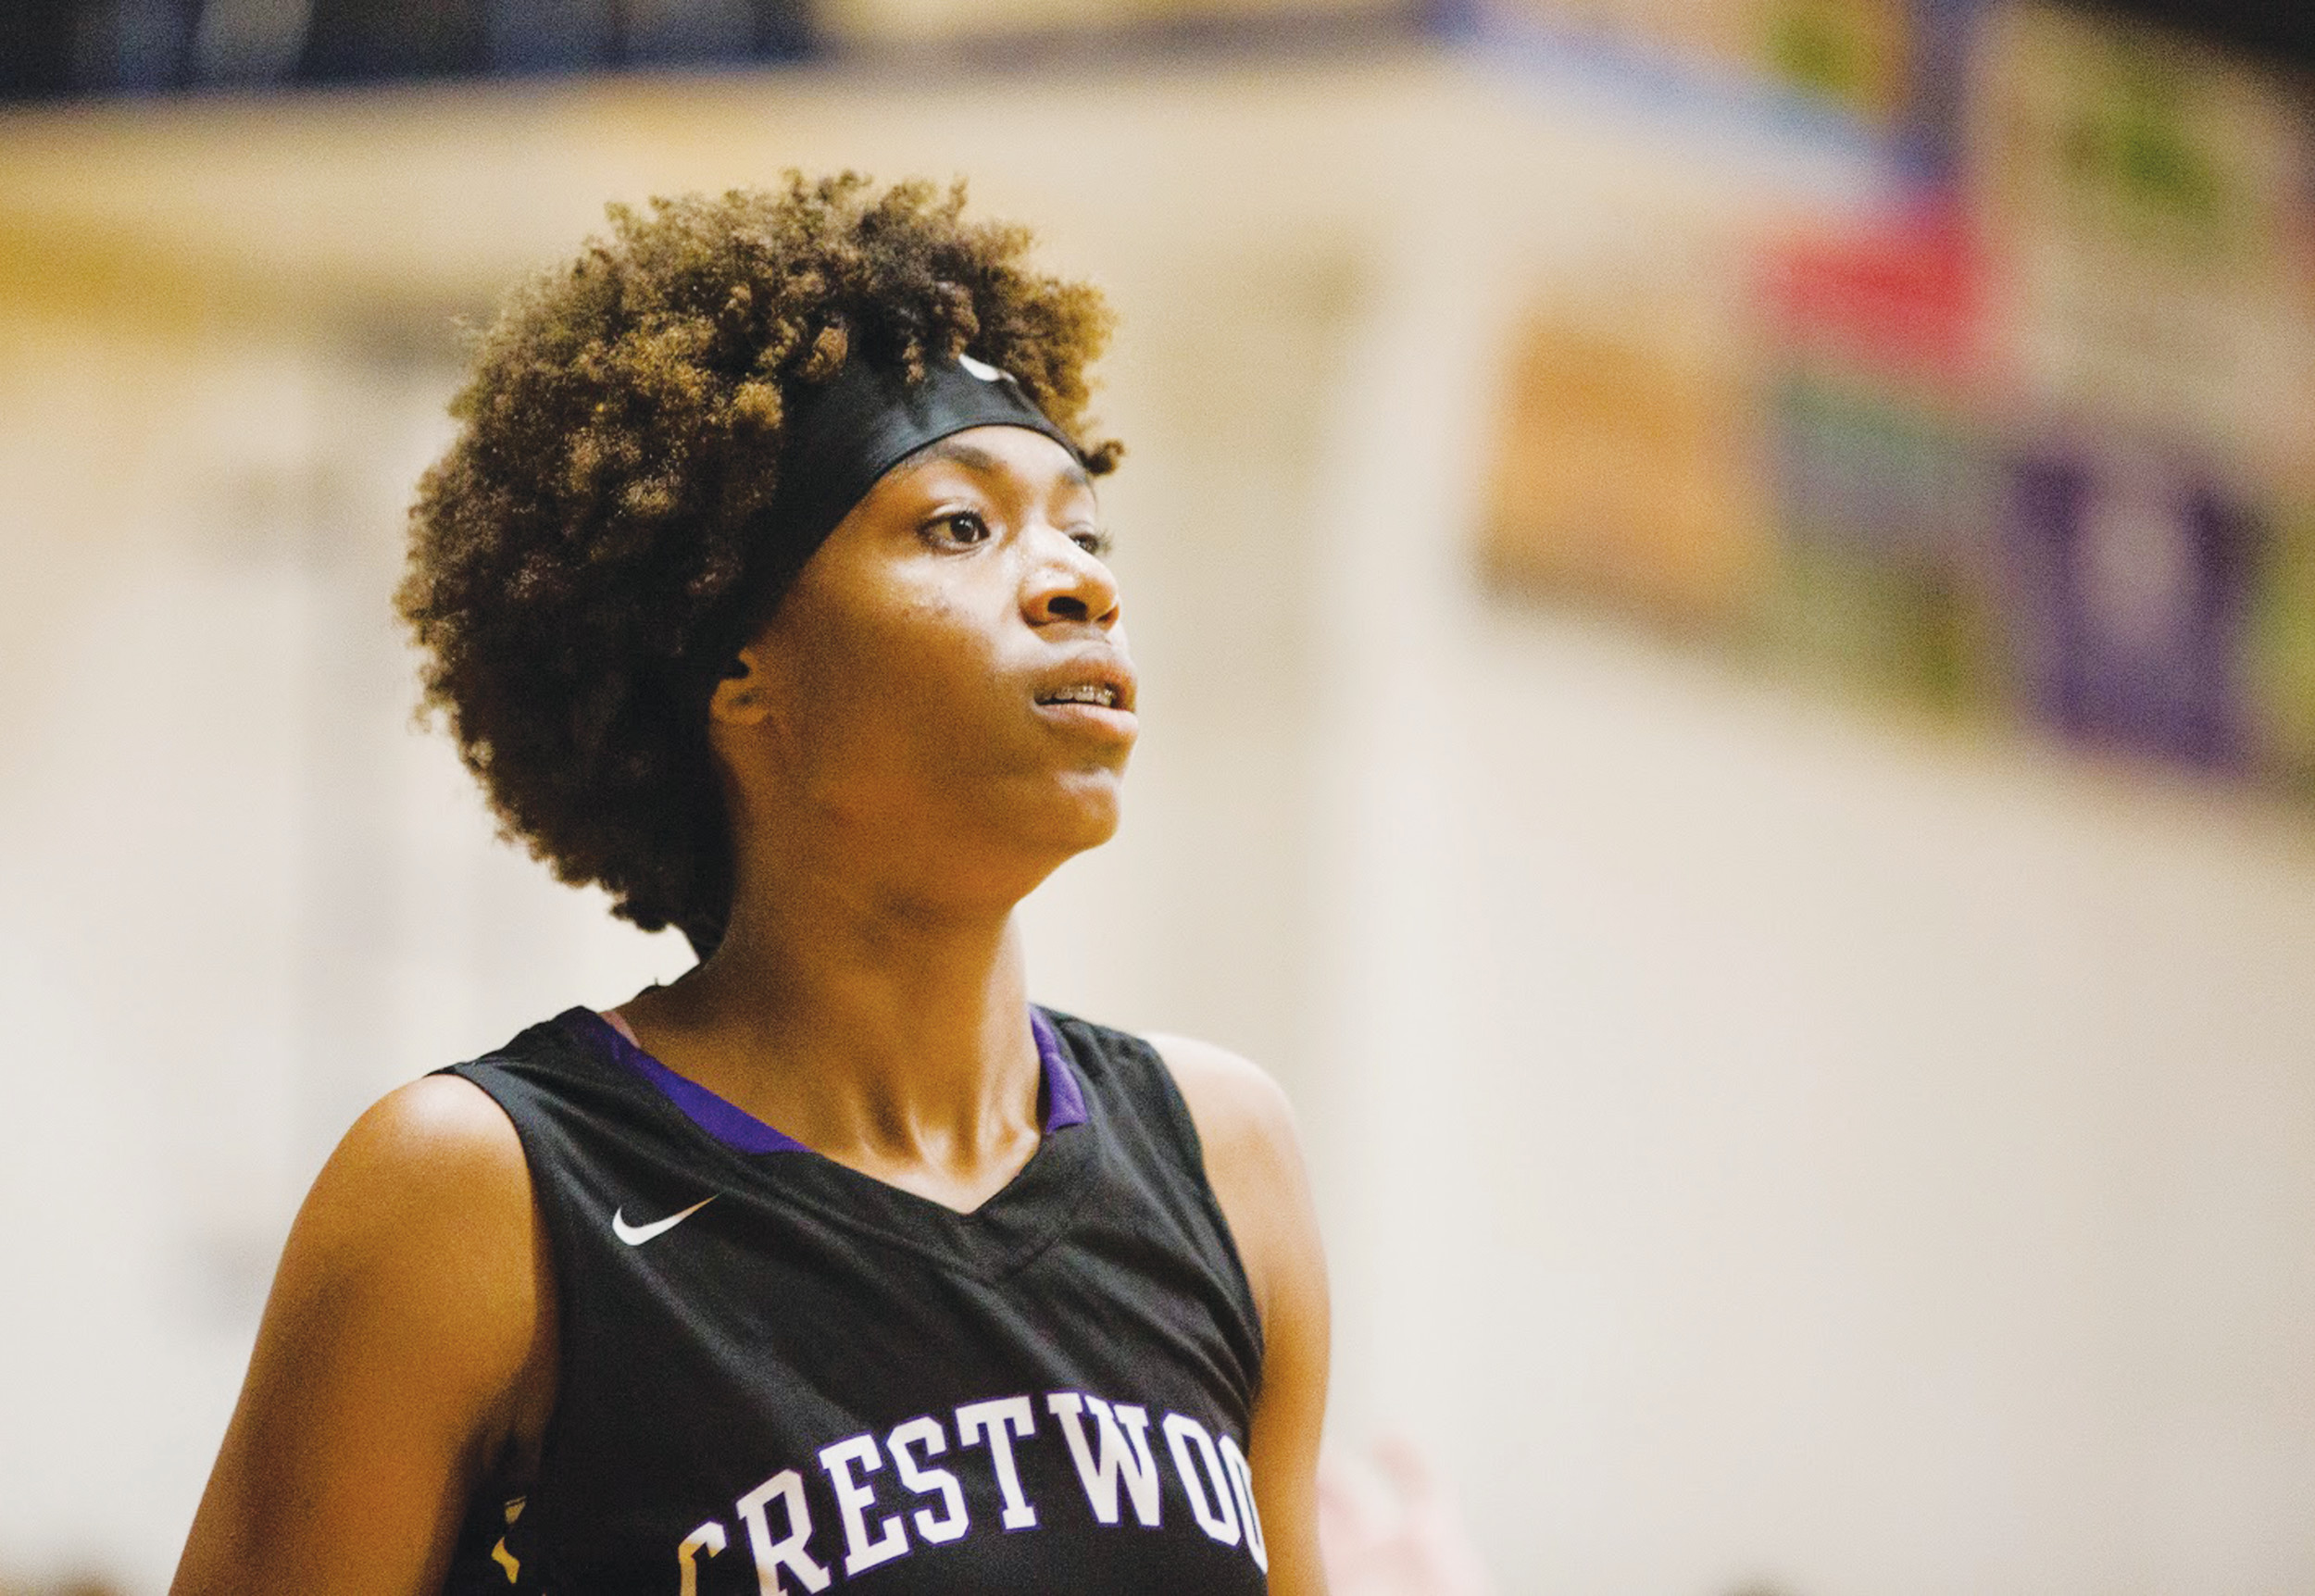 Crestwood High School's Jah-Che Whitfield is among the local players competing in the annual District 9 Officials holiday basketball tournament this weekend at Morris College's Garrick-Boykin Human Development Center.